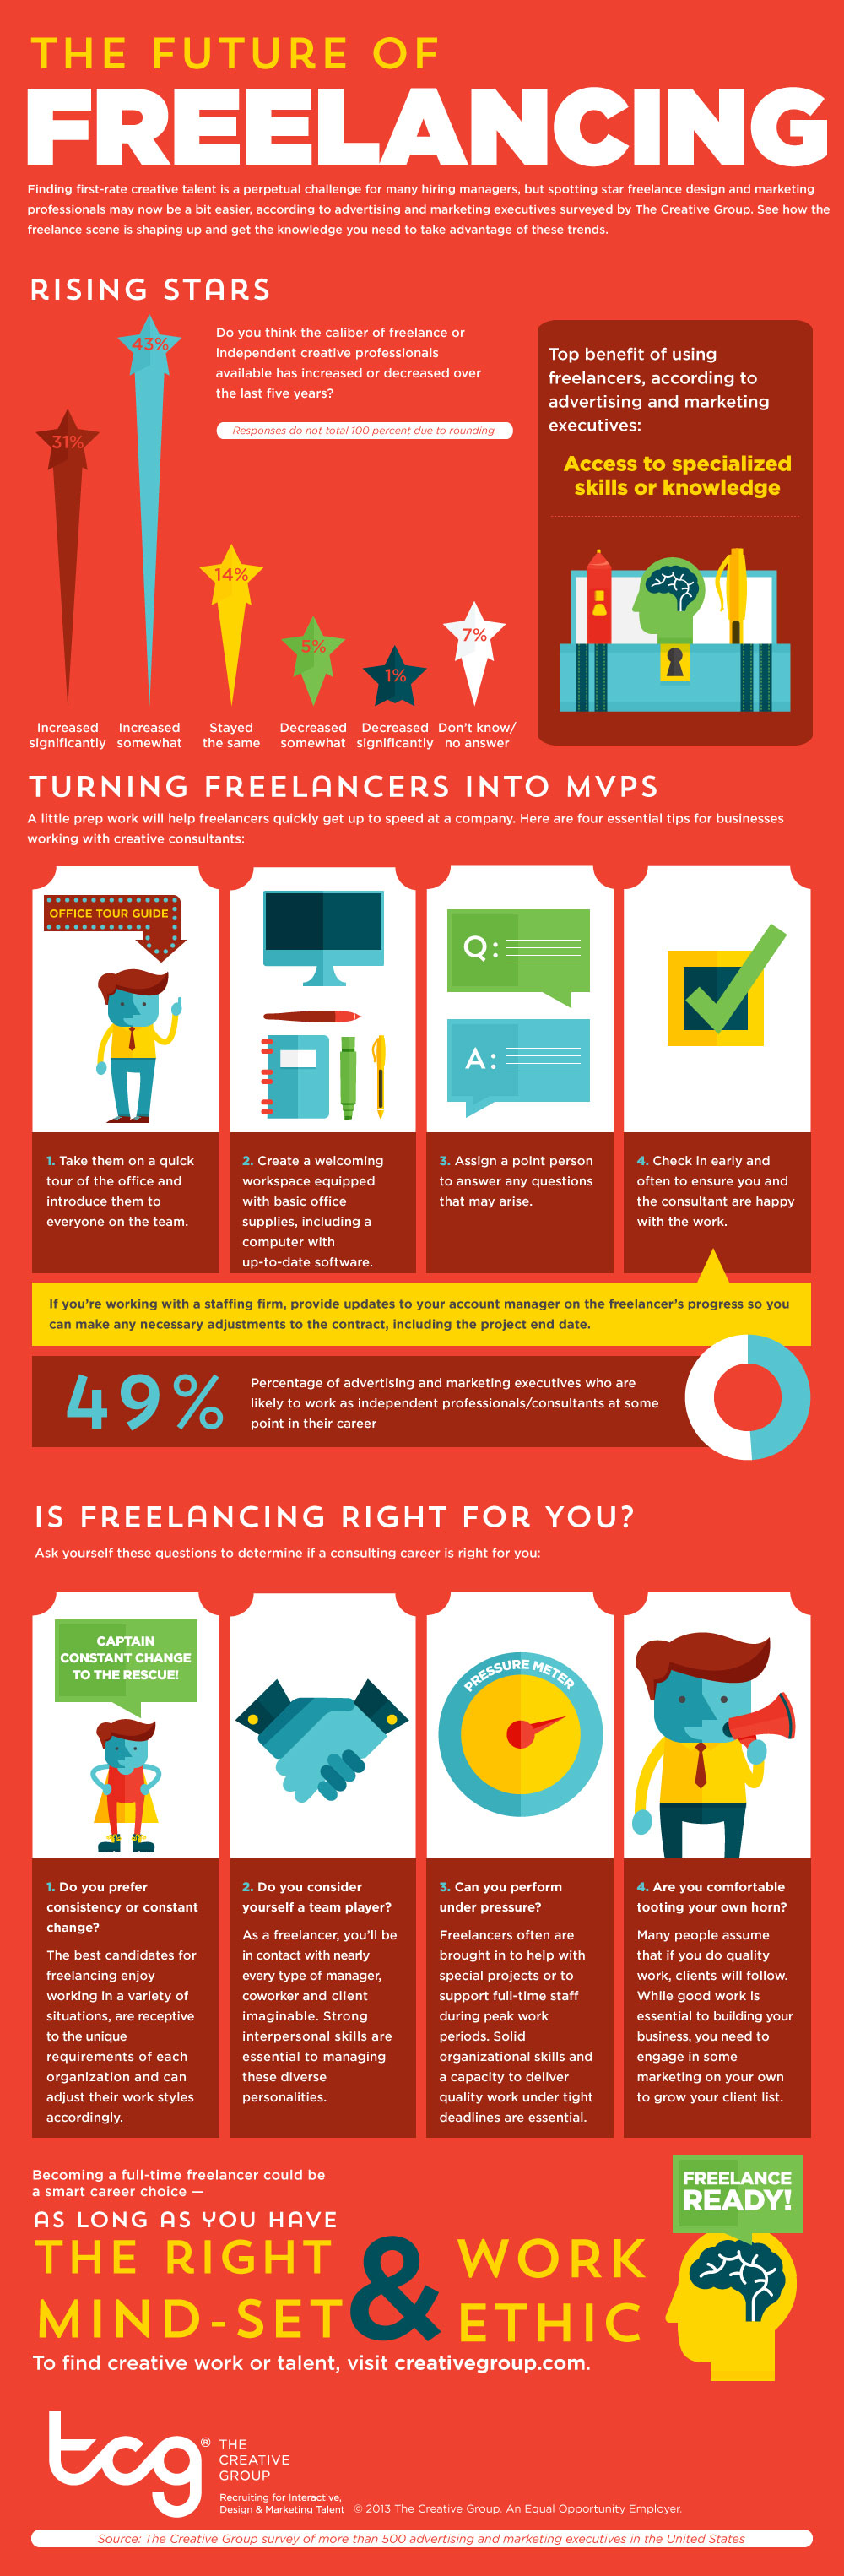 10 Best Cheat Sheets, Infographics, Resources for Freelancers